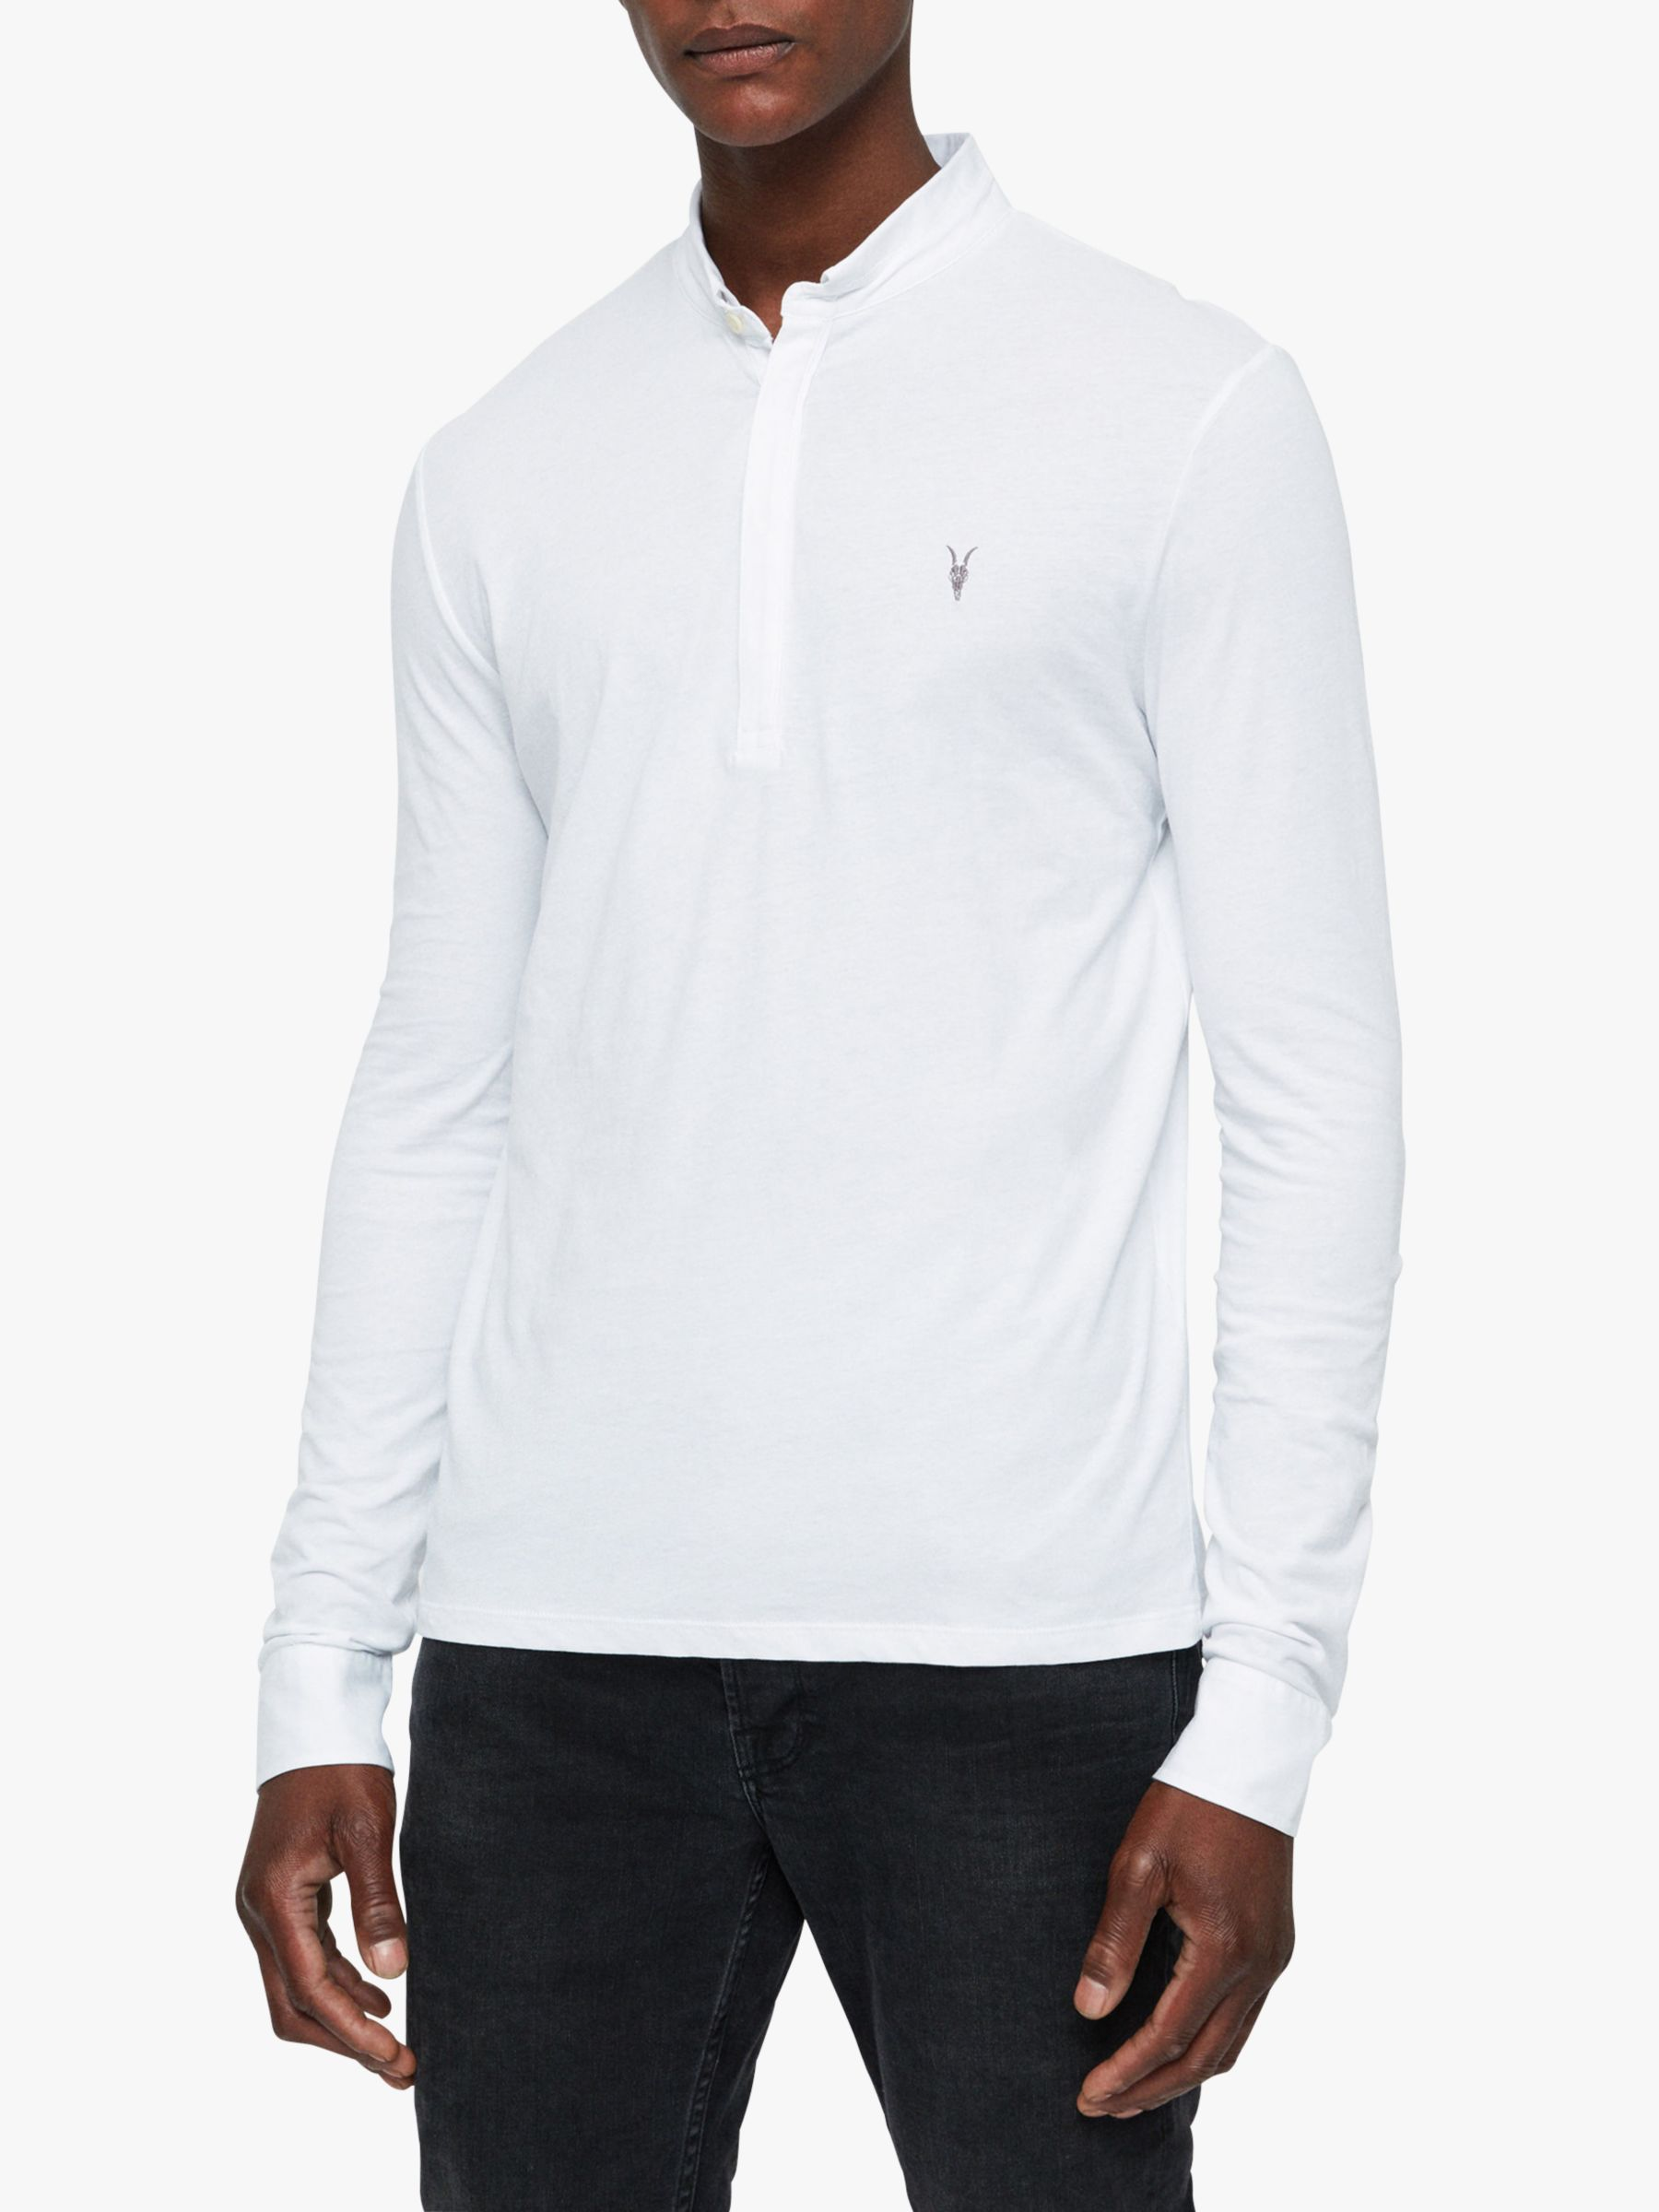 AllSaints AllSaints Grail Long Sleeve Polo Shirt